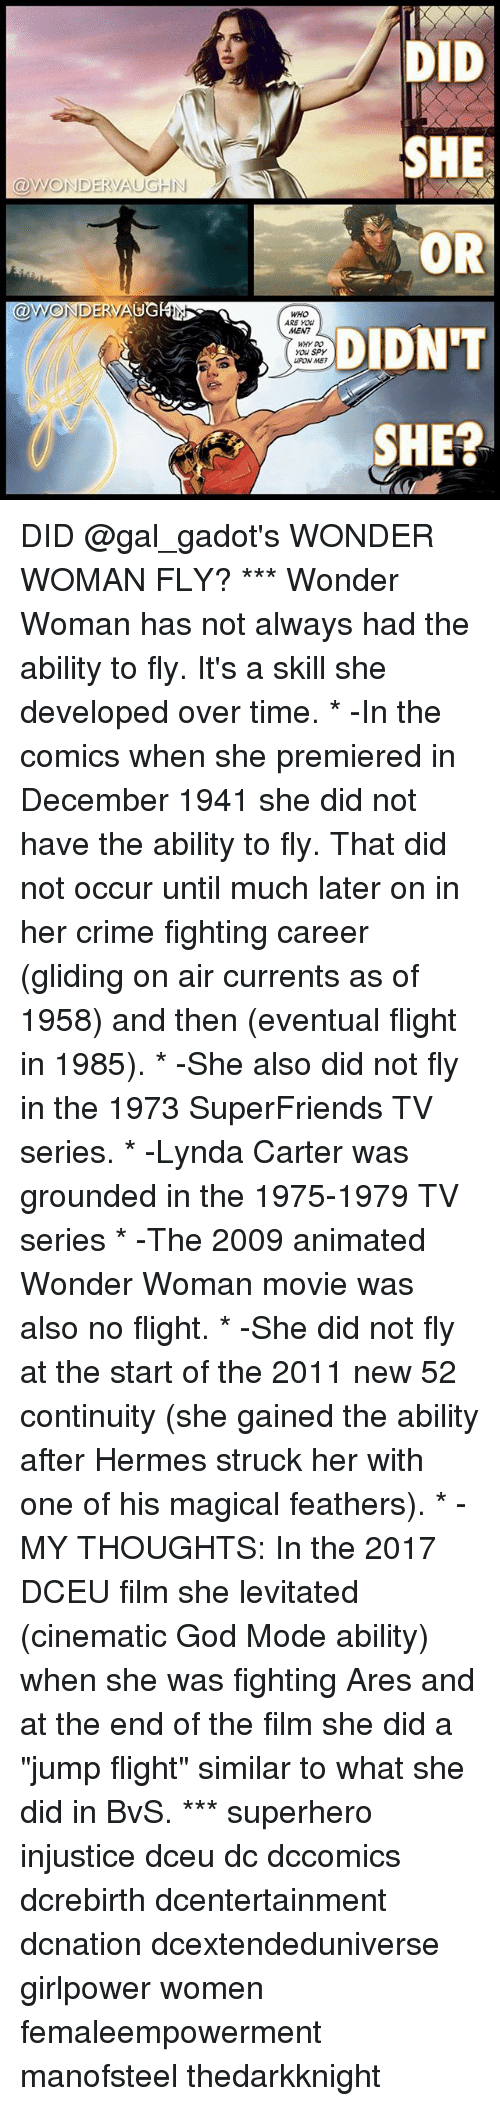 """The 1975: DID  SHE  OR  DIDN'T  SHE?  @WONDERVAUGHN  @WONDERVAUGEN  WHO  ARE YOU  MEN?  WHY DO  you Spy  UPON ME DID @gal_gadot's WONDER WOMAN FLY? *** Wonder Woman has not always had the ability to fly. It's a skill she developed over time. * -In the comics when she premiered in December 1941 she did not have the ability to fly. That did not occur until much later on in her crime fighting career (gliding on air currents as of 1958) and then (eventual flight in 1985). * -She also did not fly in the 1973 SuperFriends TV series. * -Lynda Carter was grounded in the 1975-1979 TV series * -The 2009 animated Wonder Woman movie was also no flight. * -She did not fly at the start of the 2011 new 52 continuity (she gained the ability after Hermes struck her with one of his magical feathers). * -MY THOUGHTS: In the 2017 DCEU film she levitated (cinematic God Mode ability) when she was fighting Ares and at the end of the film she did a """"jump flight"""" similar to what she did in BvS. *** superhero injustice dceu dc dccomics dcrebirth dcentertainment dcnation dcextendeduniverse girlpower women femaleempowerment manofsteel thedarkknight"""